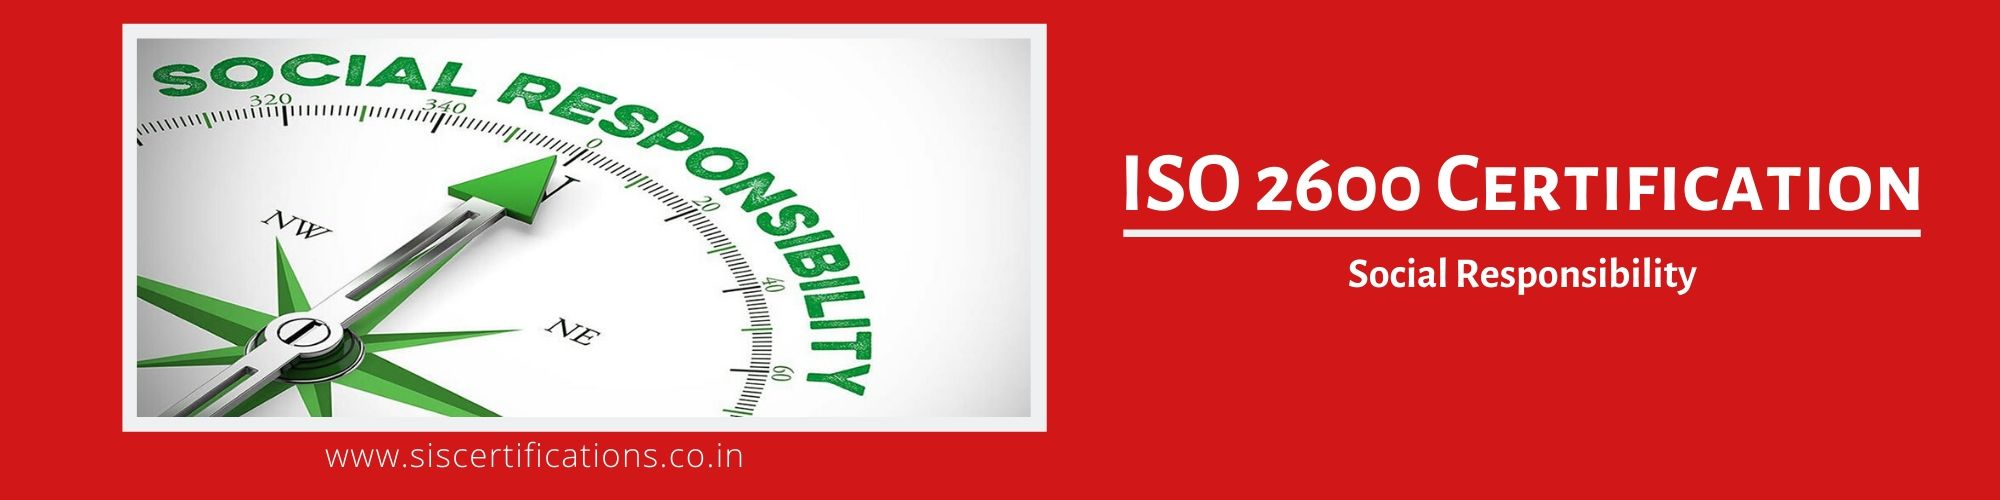 ISO 26000 Certification, ISO 26000 Certification